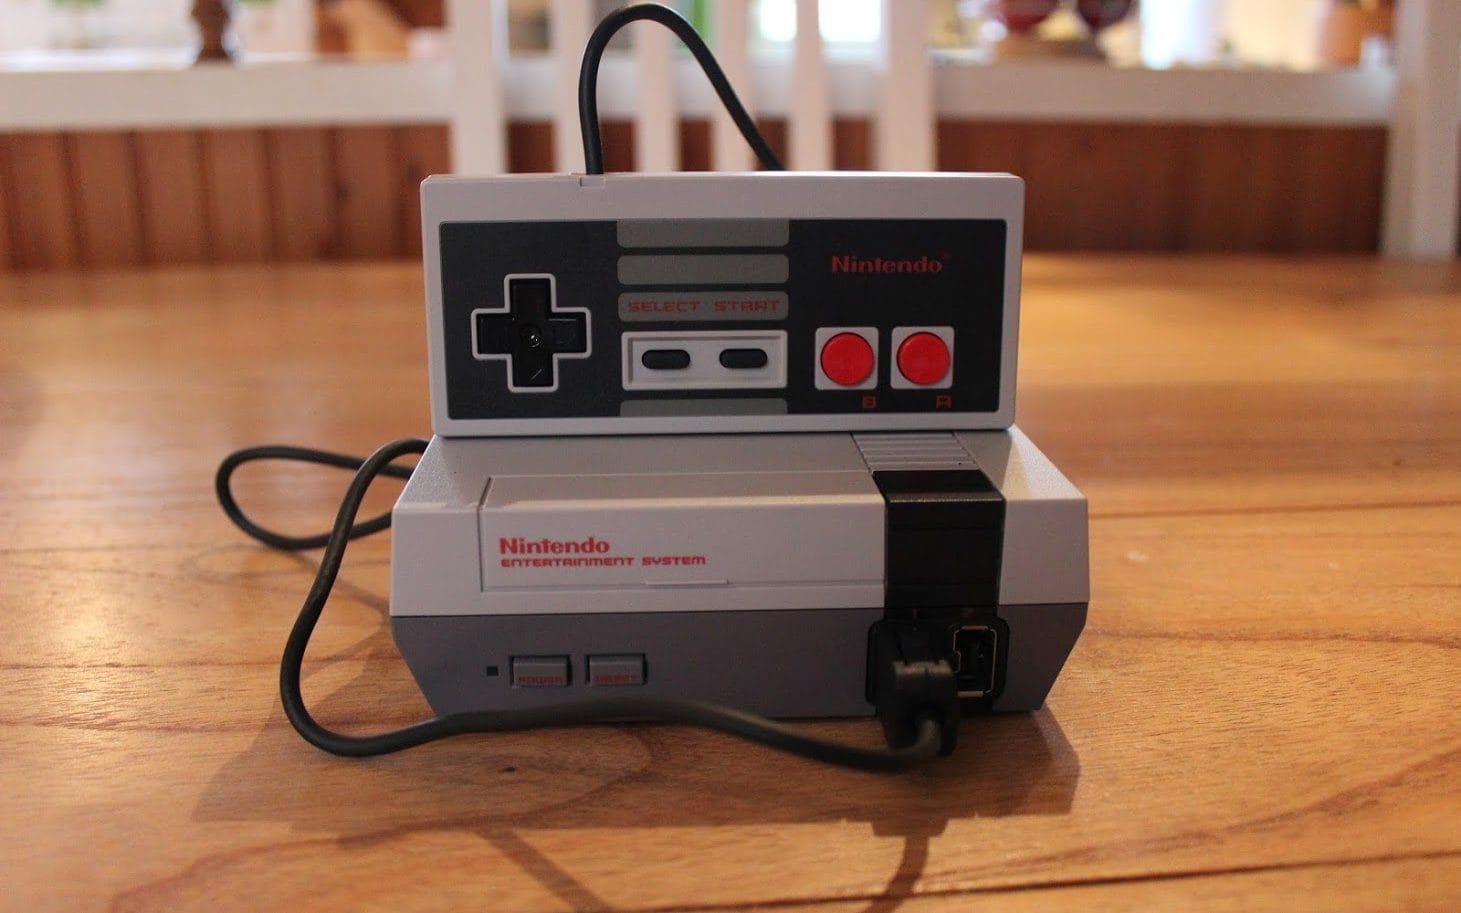 The Best Retro Games Consoles On The Market From The Playstation 2 To The SNES Mini